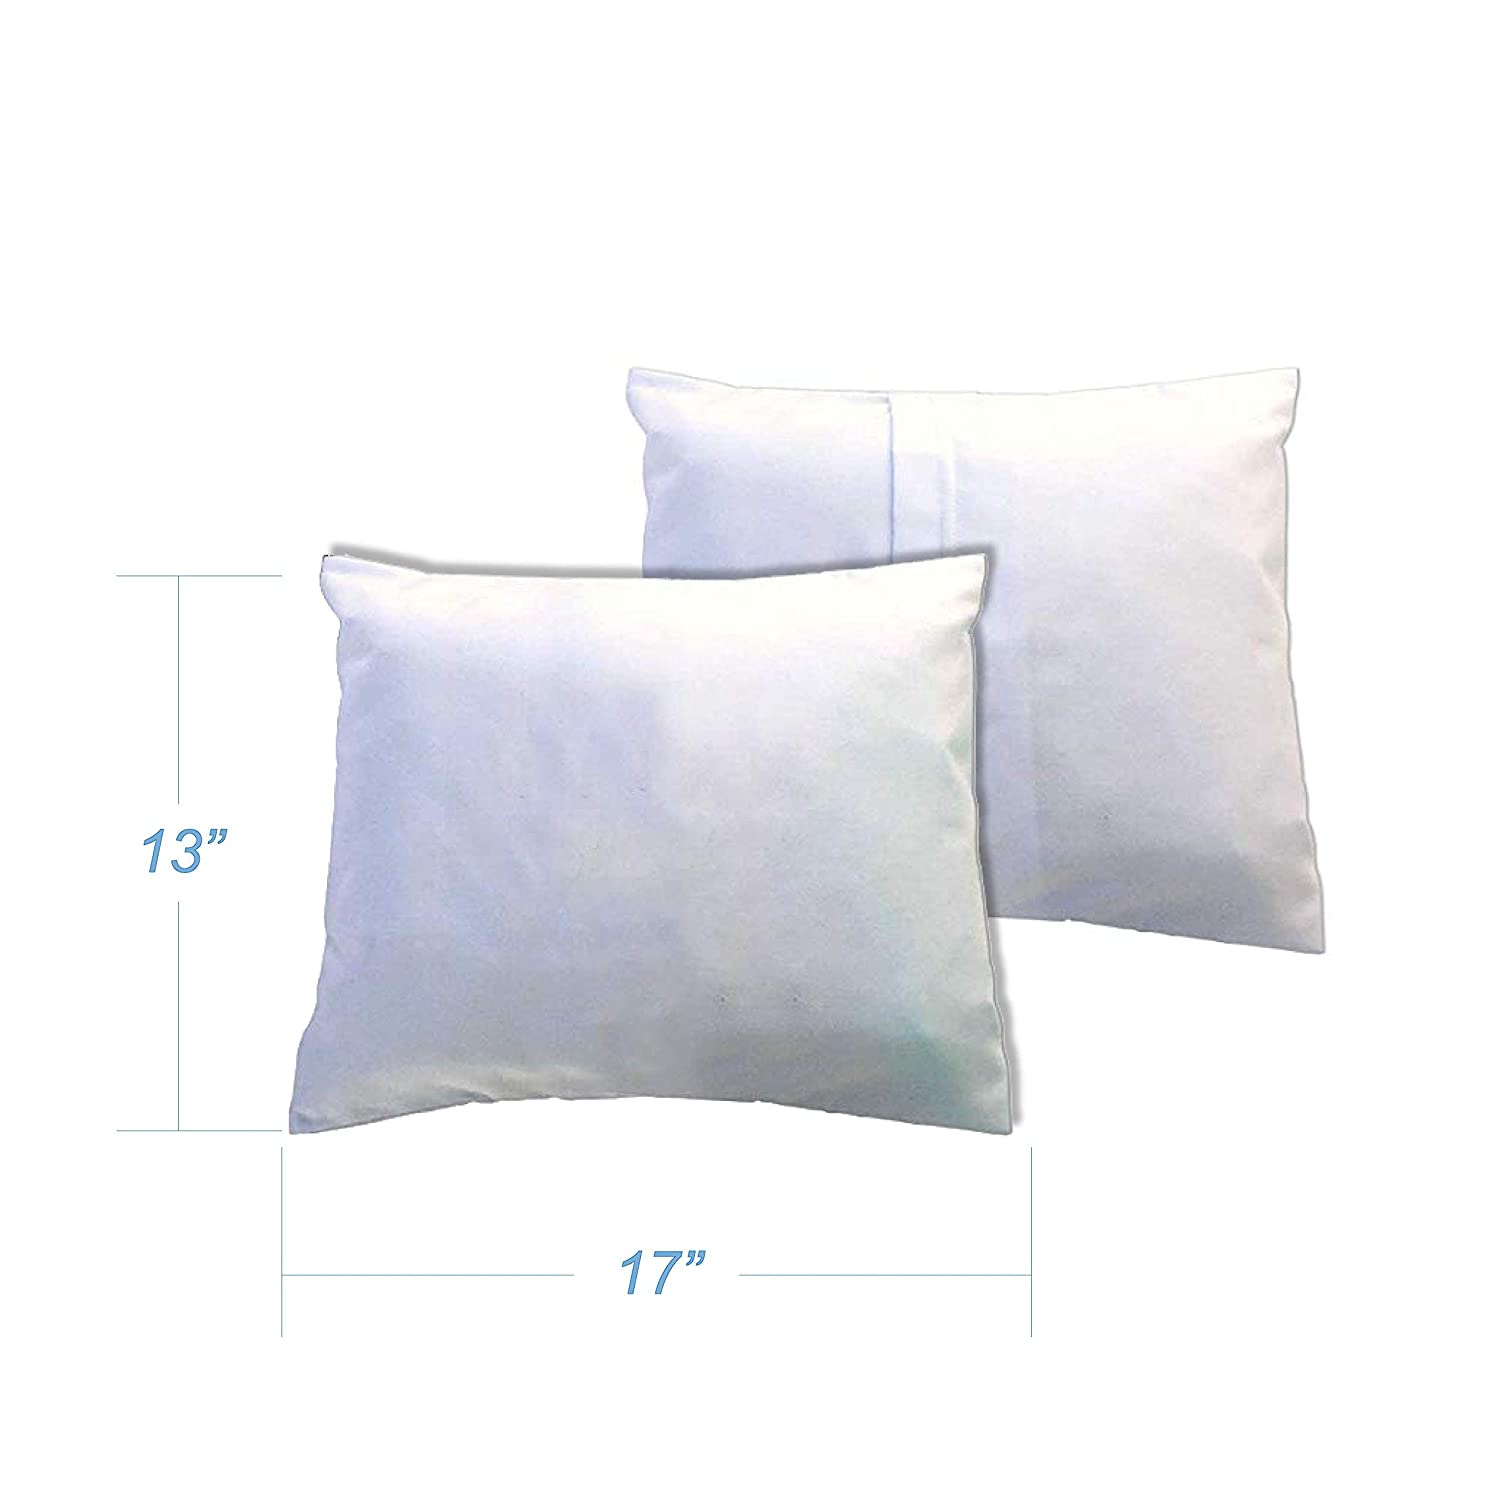 Percale Pillow Case Light Solids Baby Pillow Case SheetWorld Made In USA White